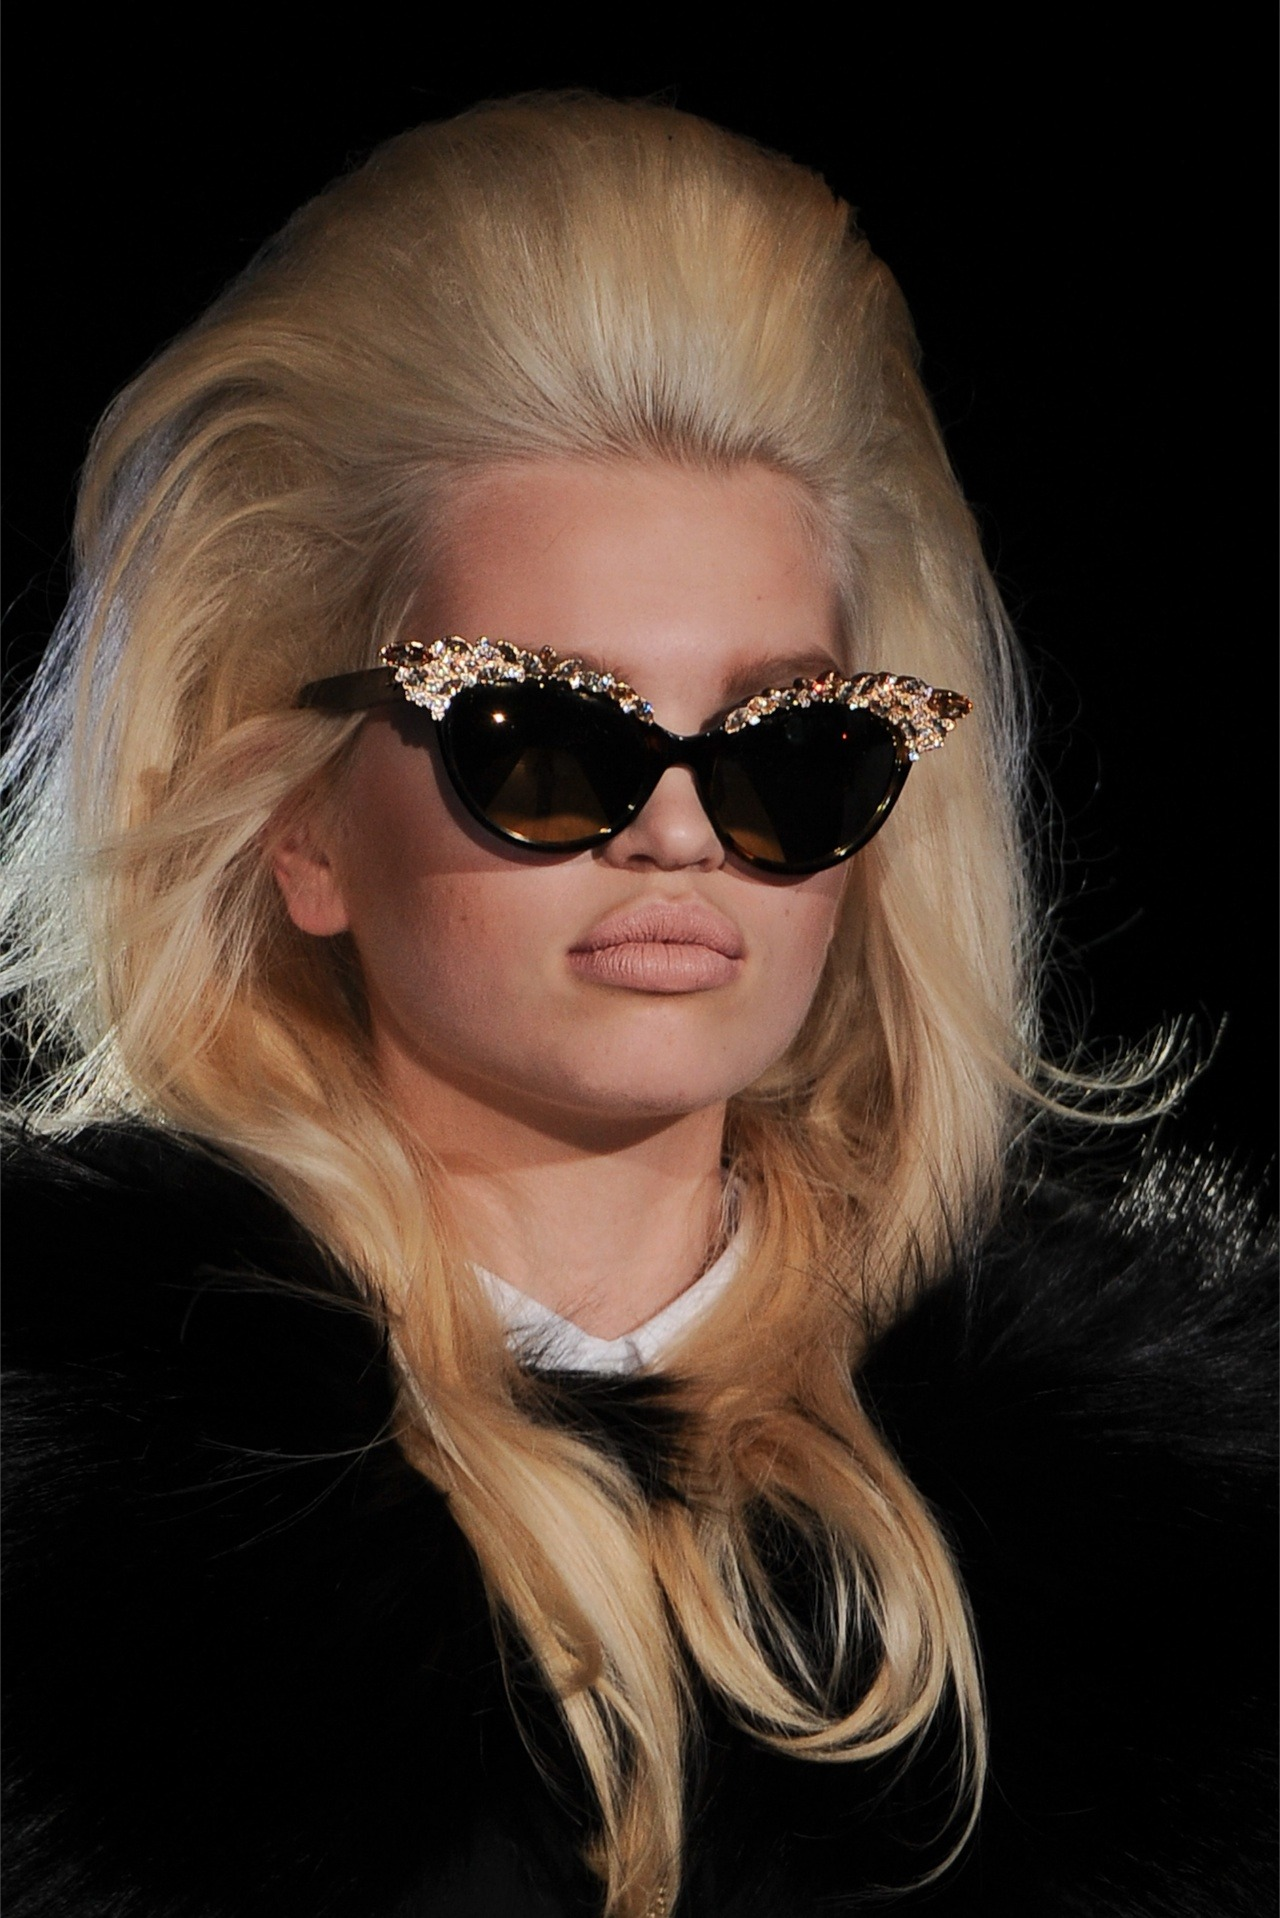 Models as dolls in Dsquared2 fw12. Daphne Groeneveld.